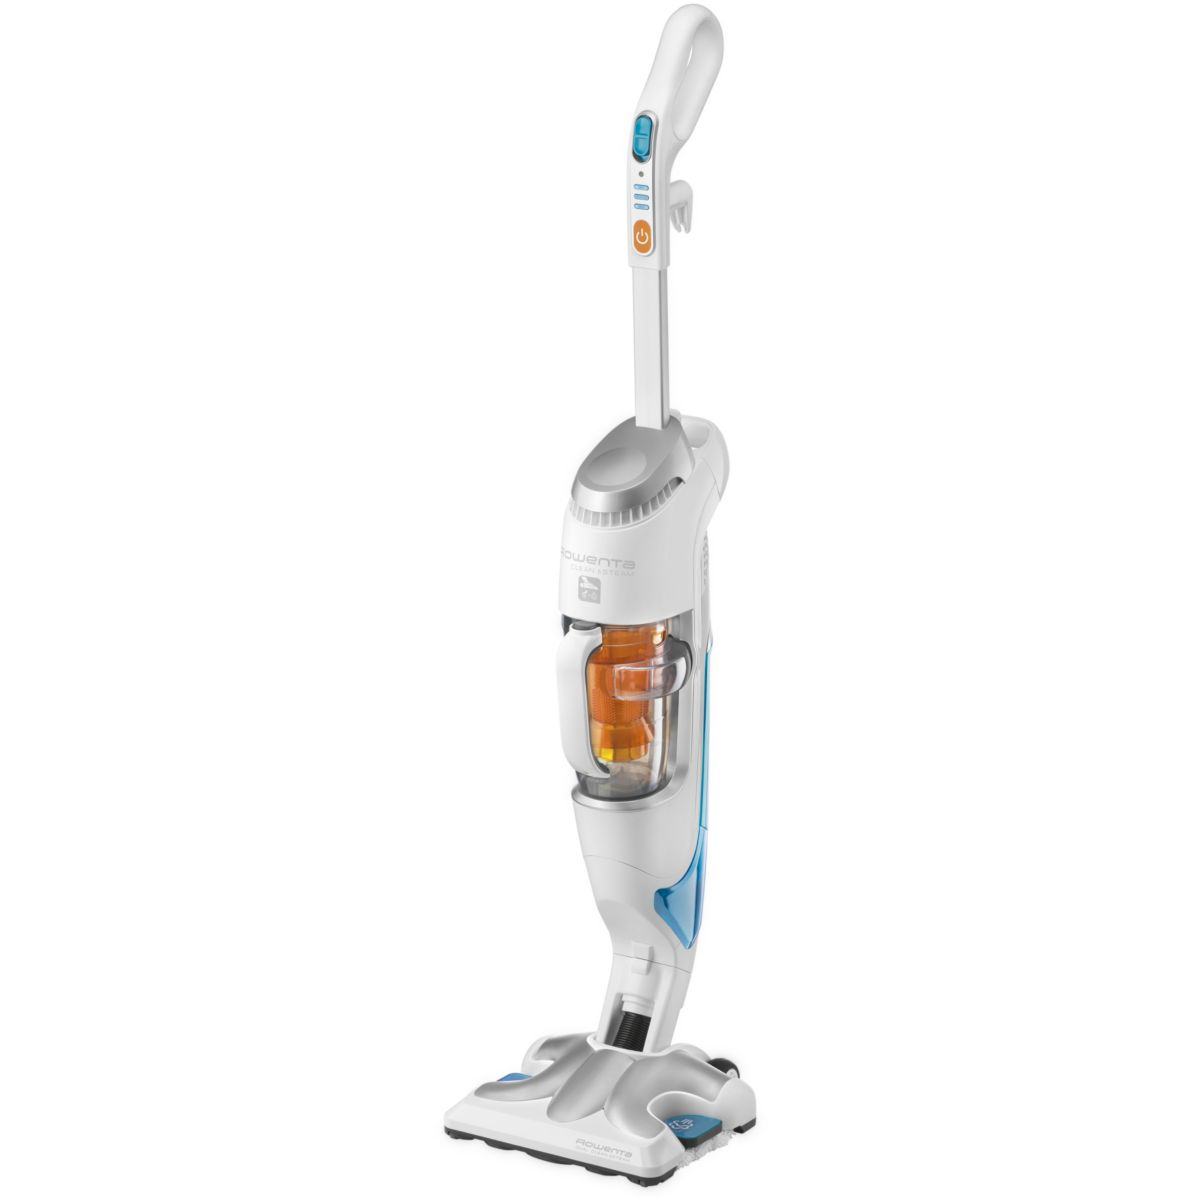 Aspirateur balai ROWENTA Clean & Steam RY755